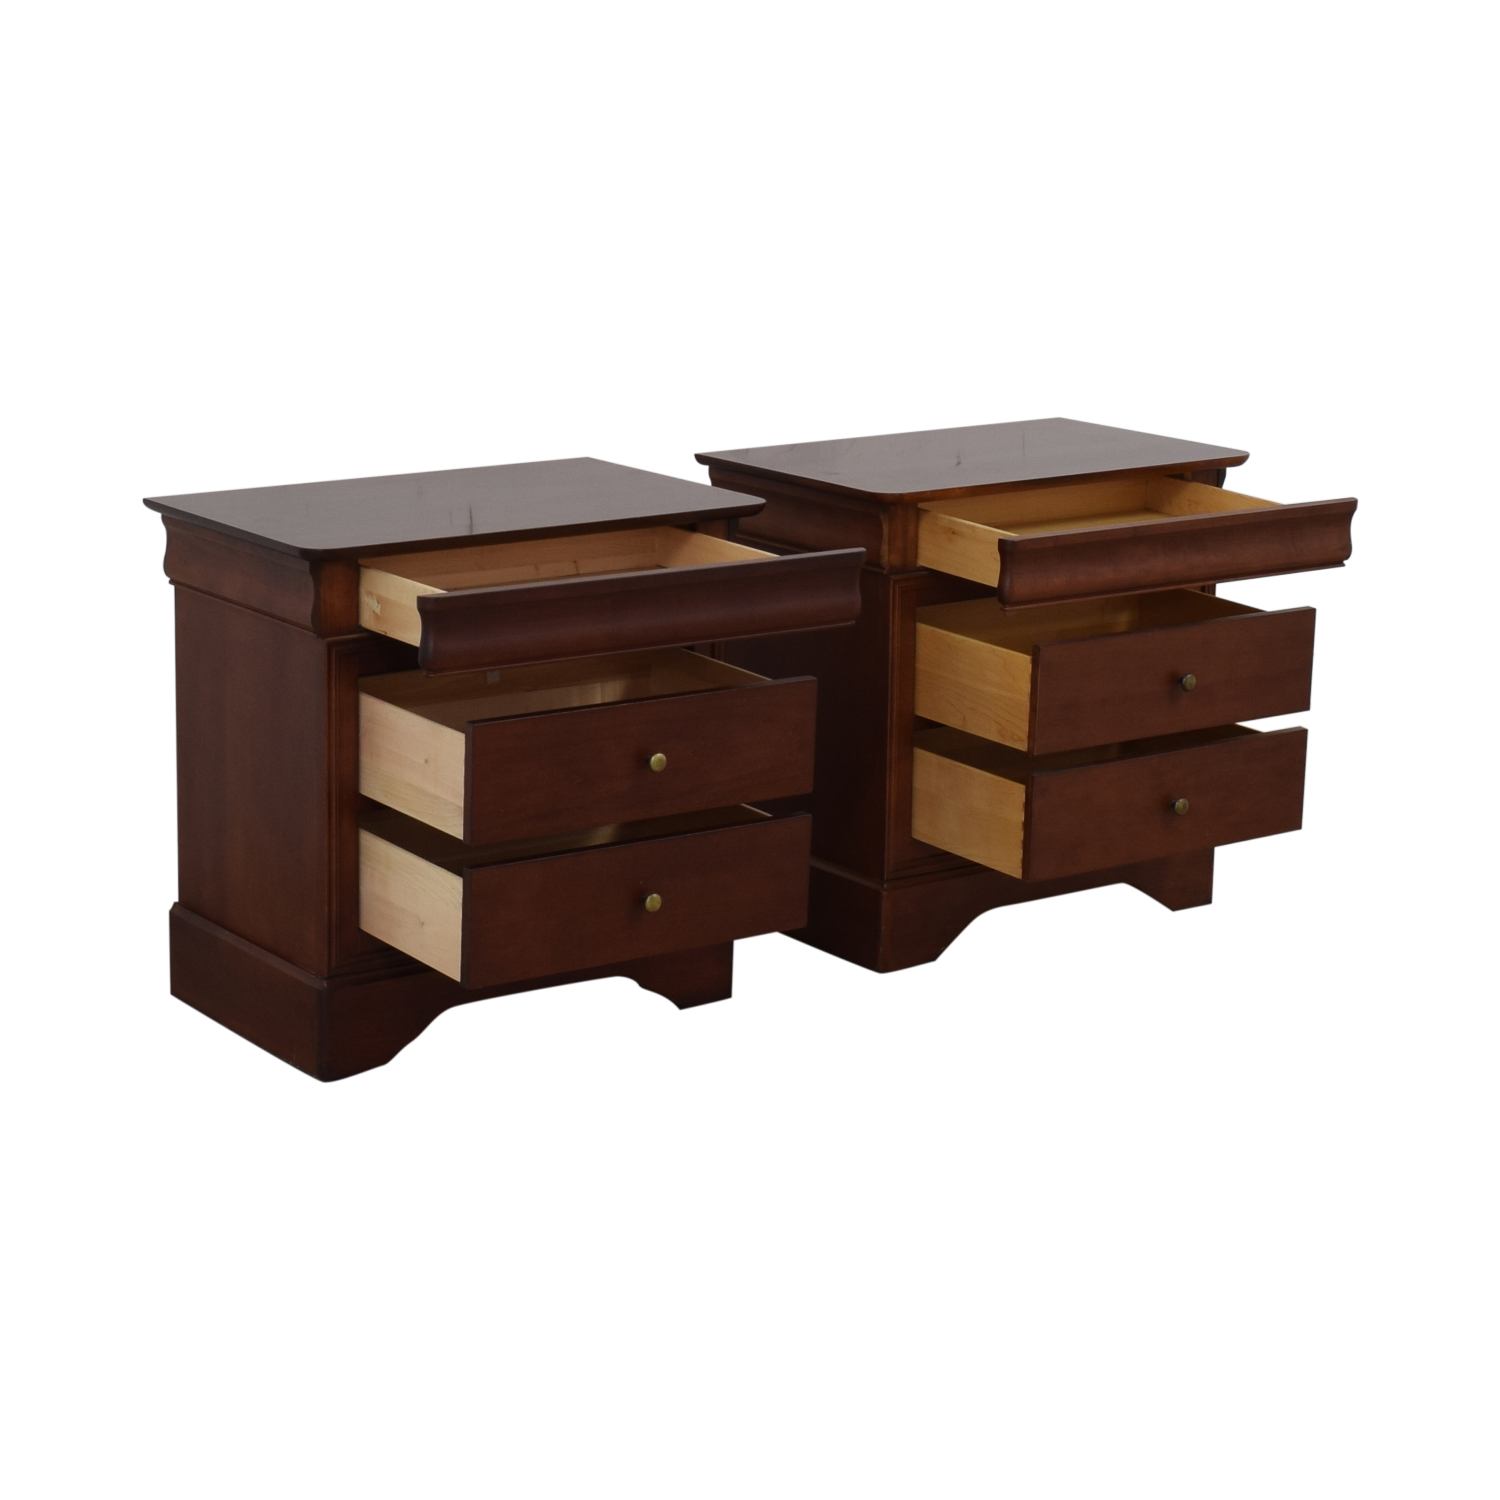 Wooden Two Drawer Night Stands or End Tables price